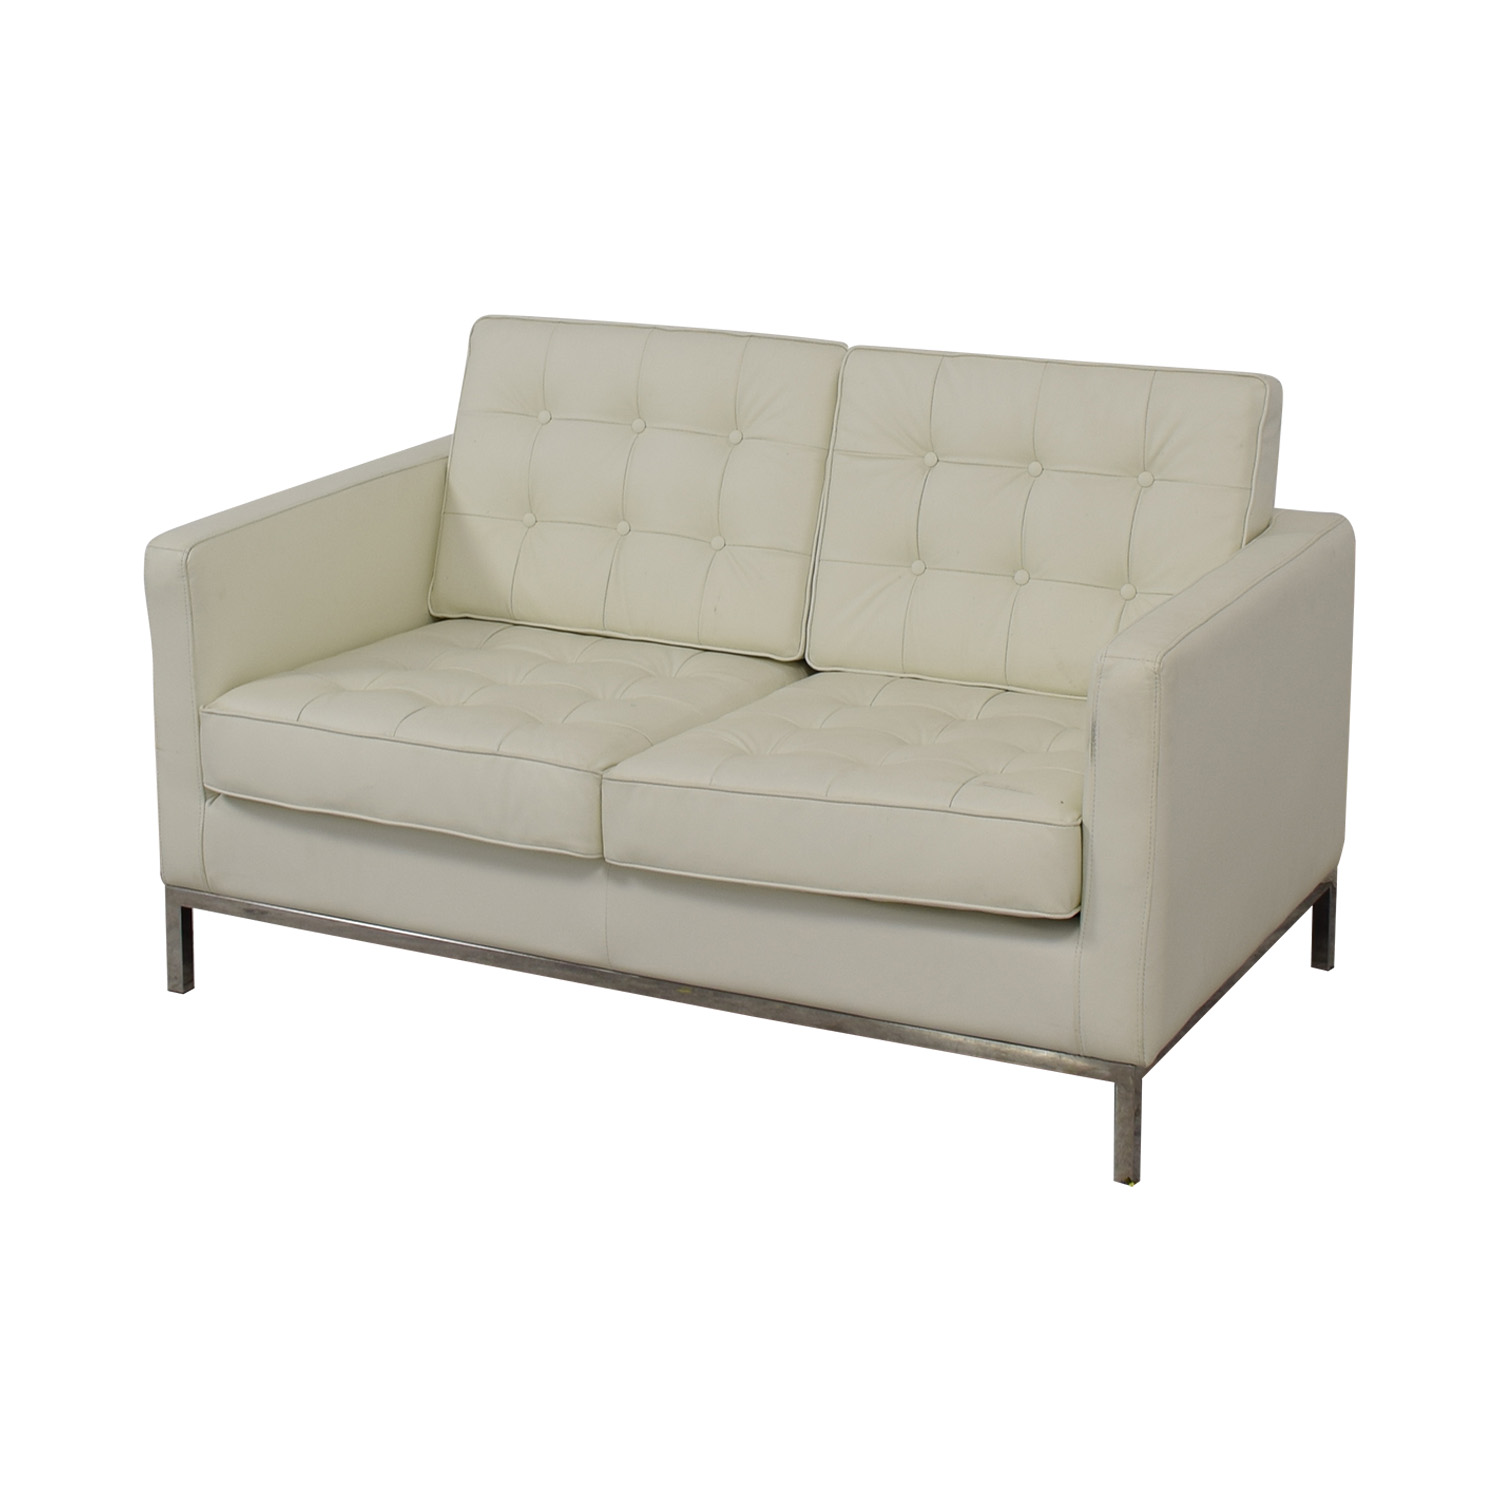 Control Brand Control Brand Mid Century Tufted Loveseat for sale